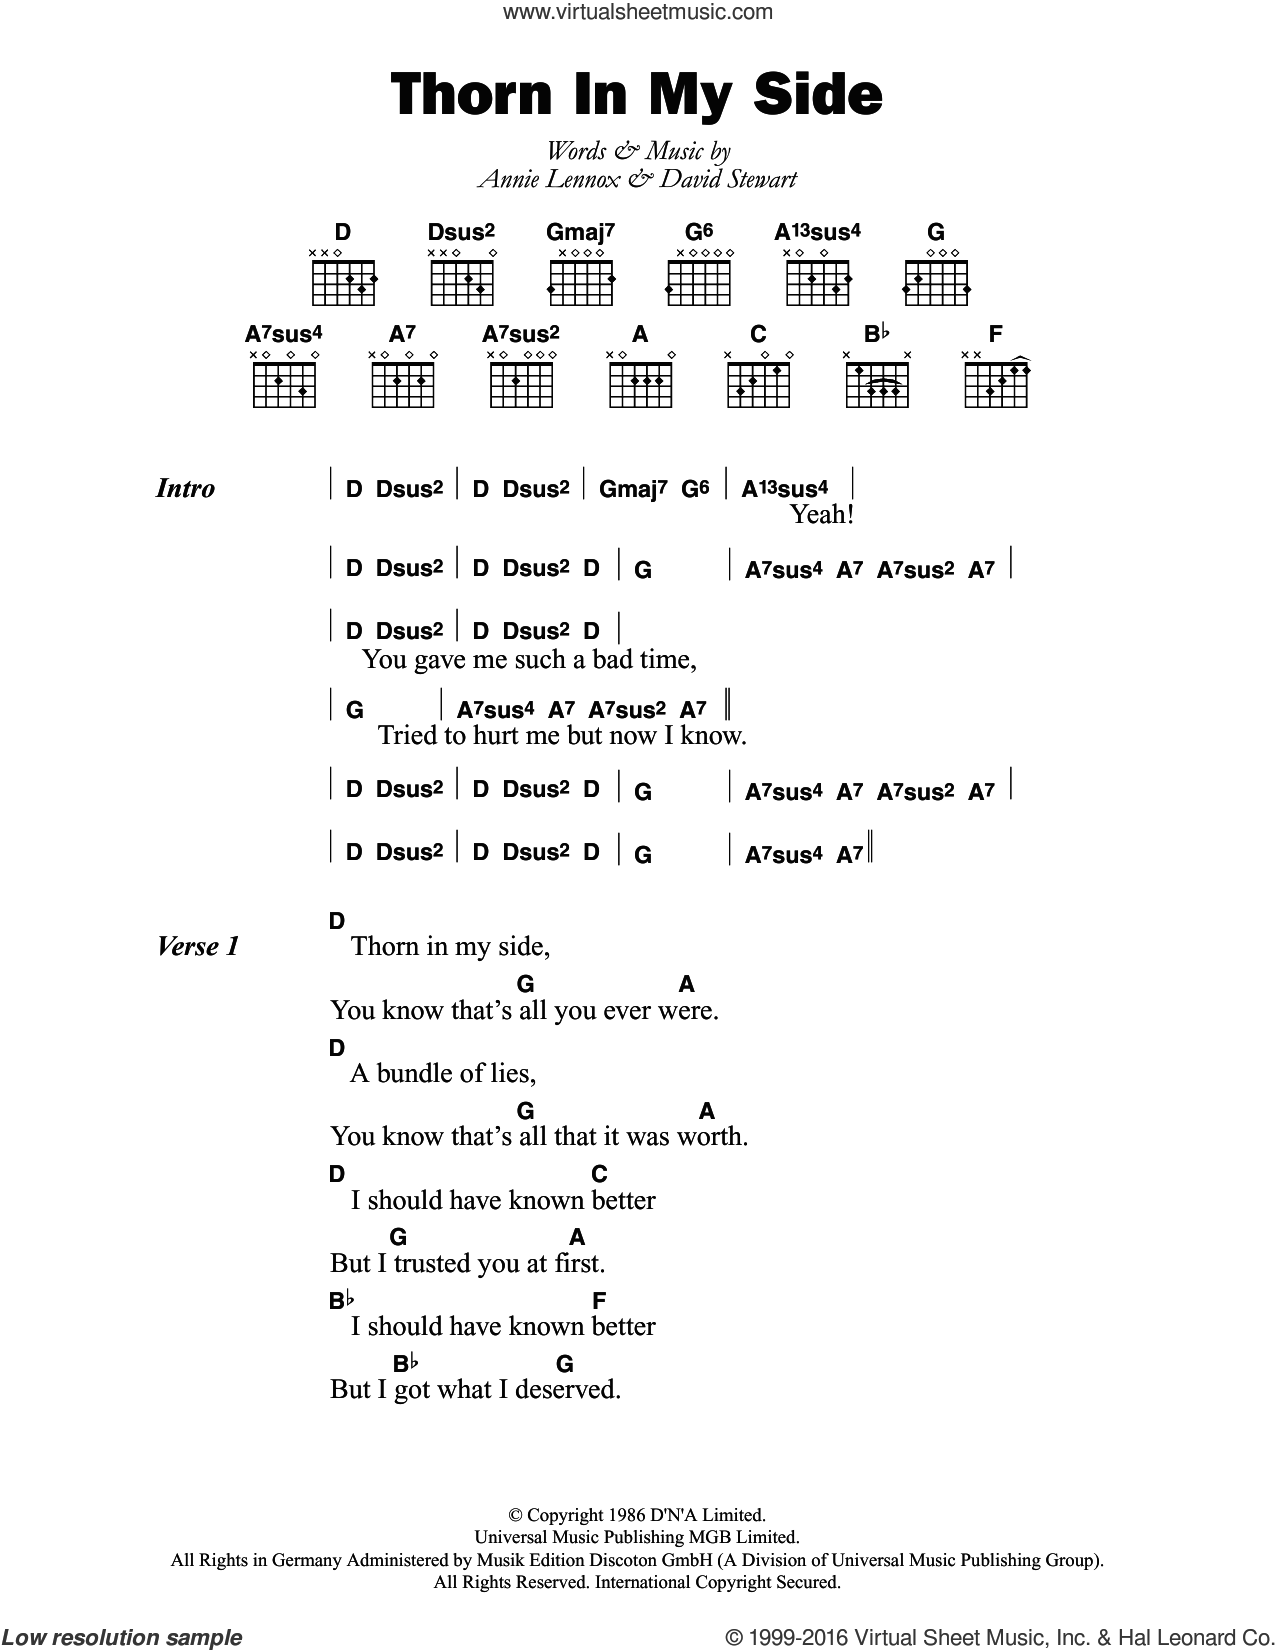 Thorn In My Side sheet music for guitar (chords) by Eurythmics, Annie Lennox and Dave Stewart, intermediate skill level